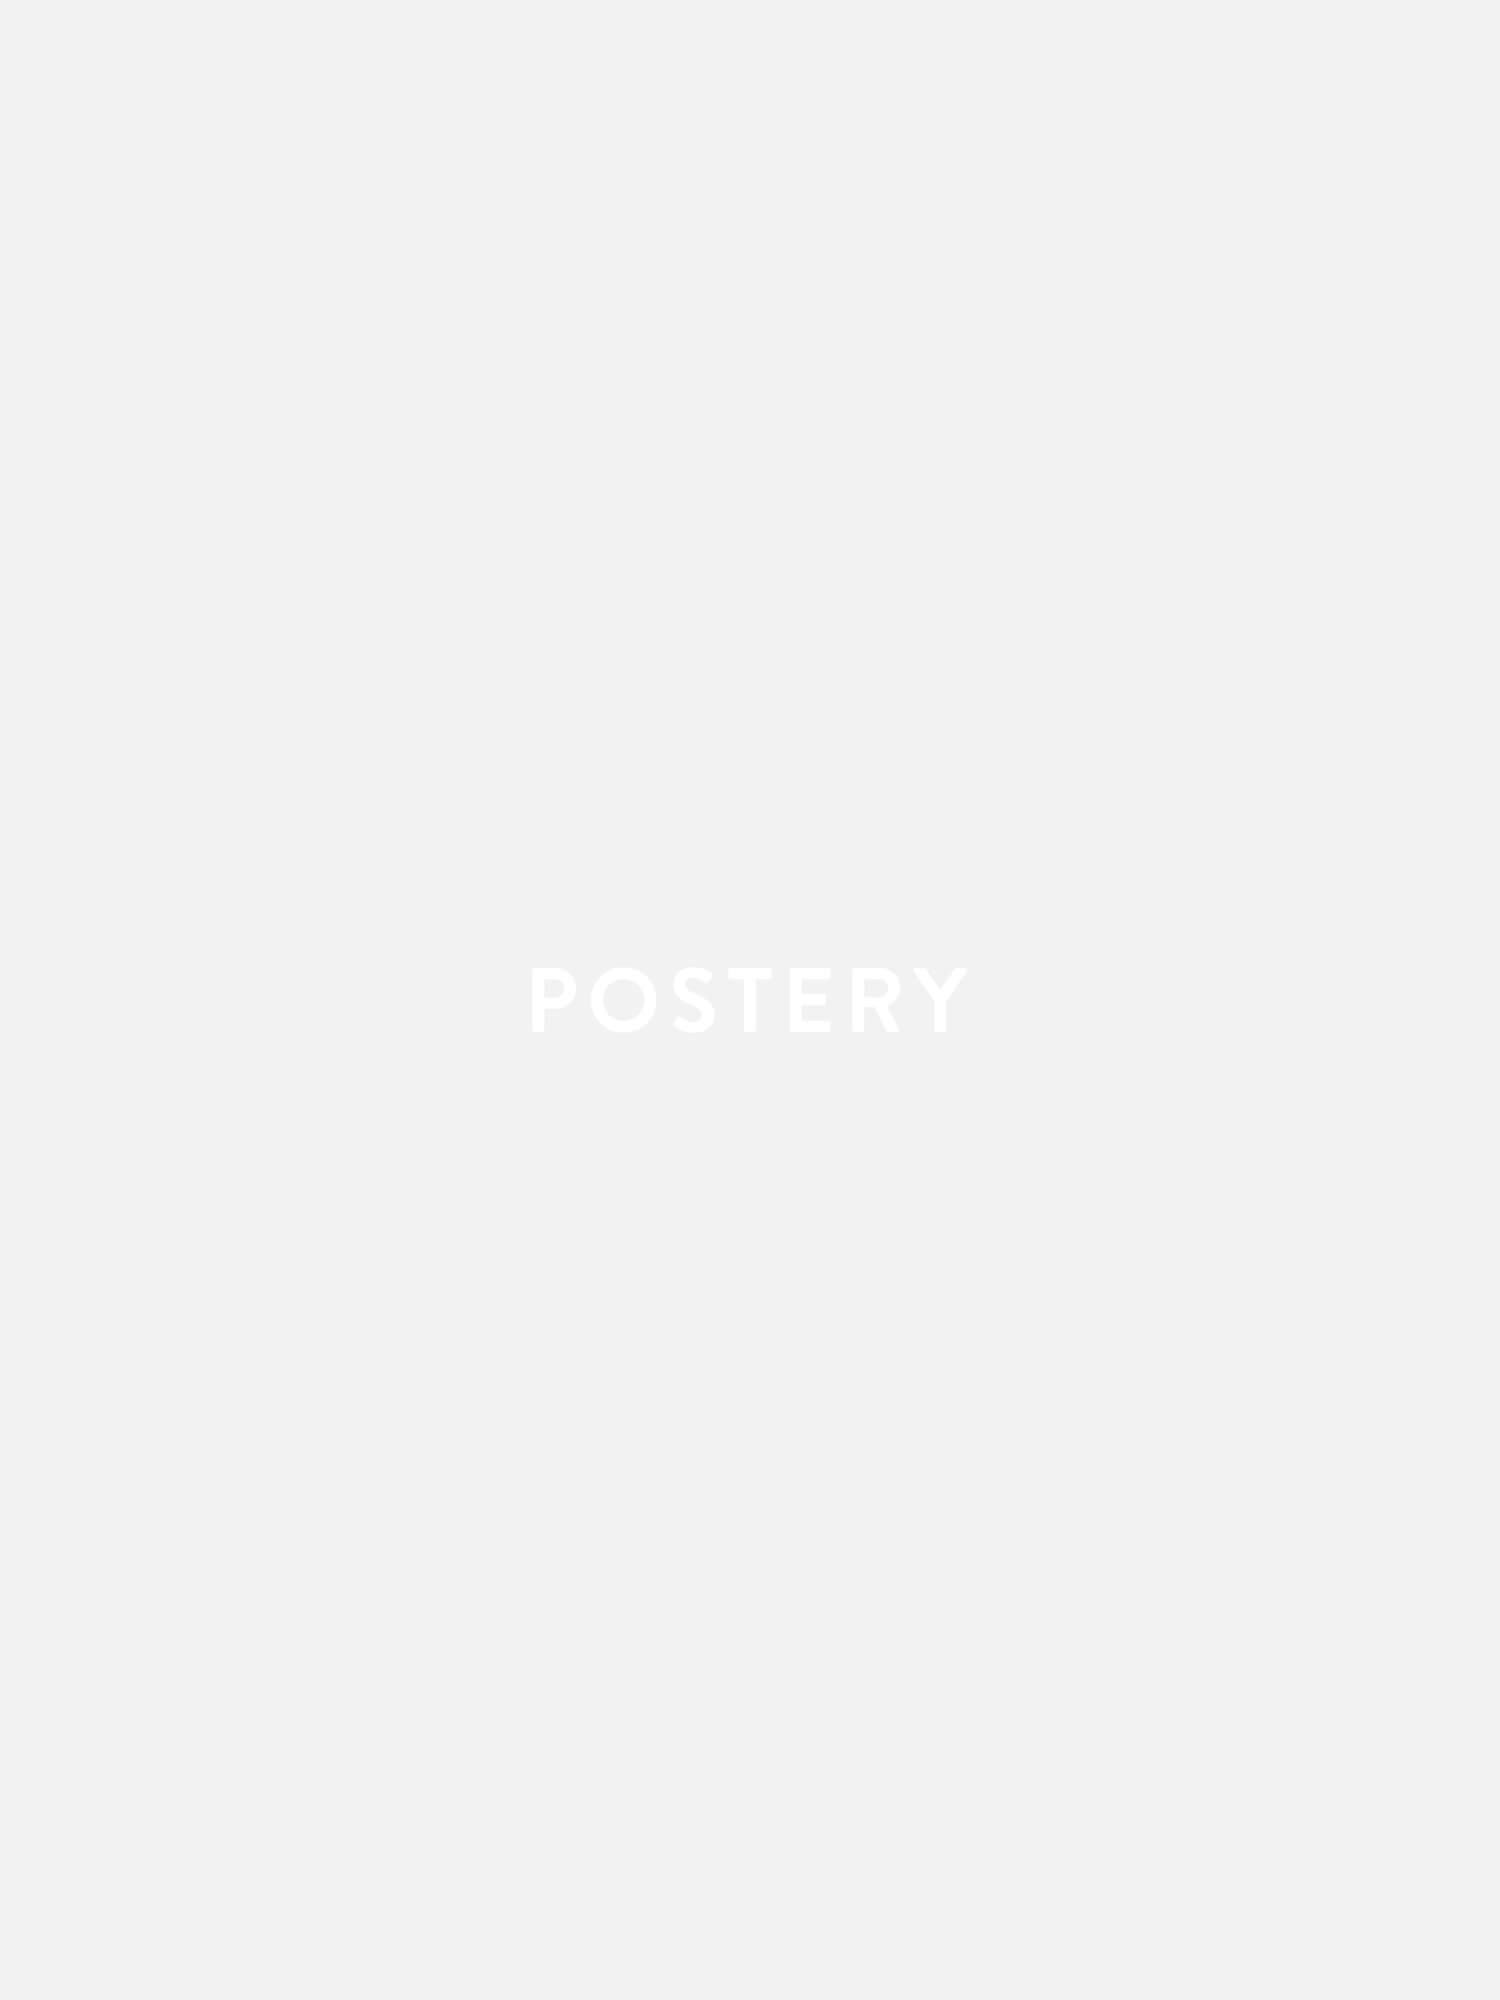 Beach Surfboards Poster